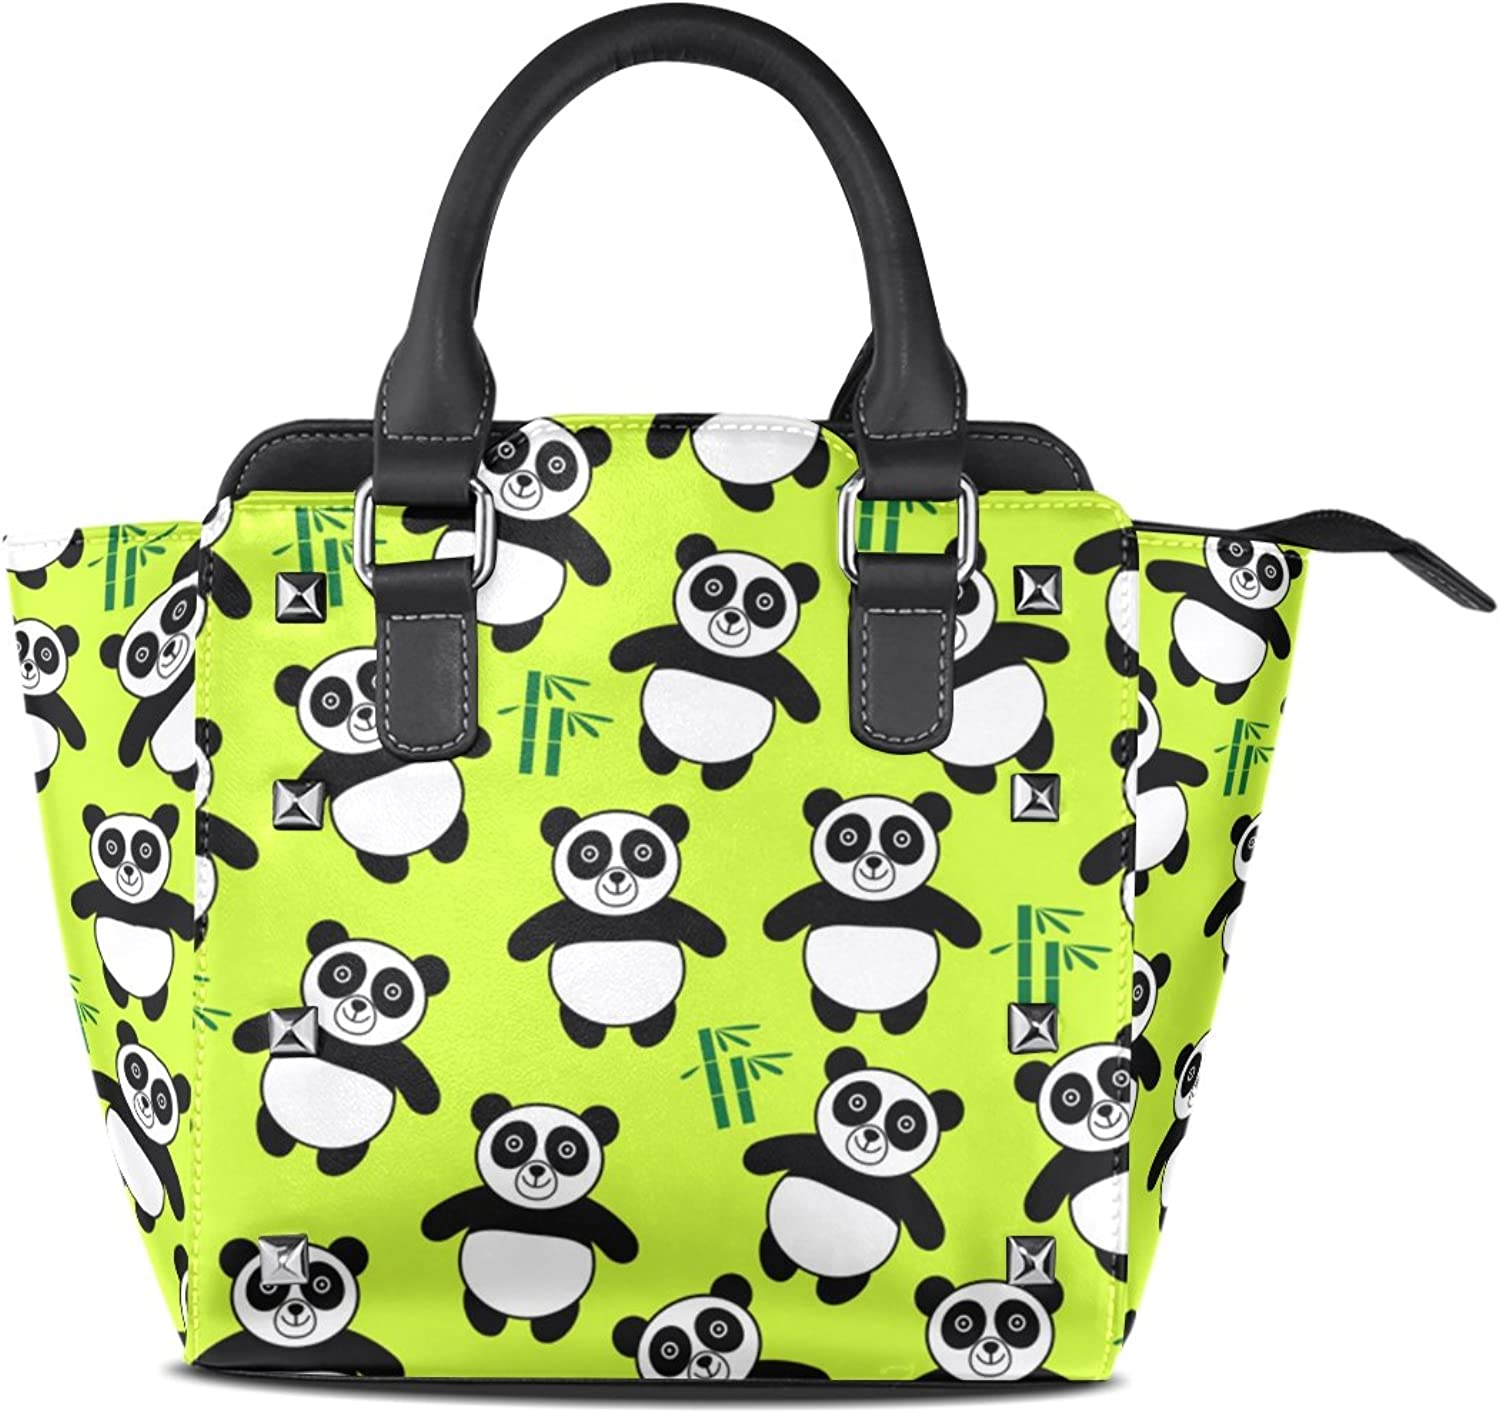 My Little Nest Women's Top Handle Satchel Handbag Cartoon Panda Green Ladies PU Leather Shoulder Bag Crossbody Bag